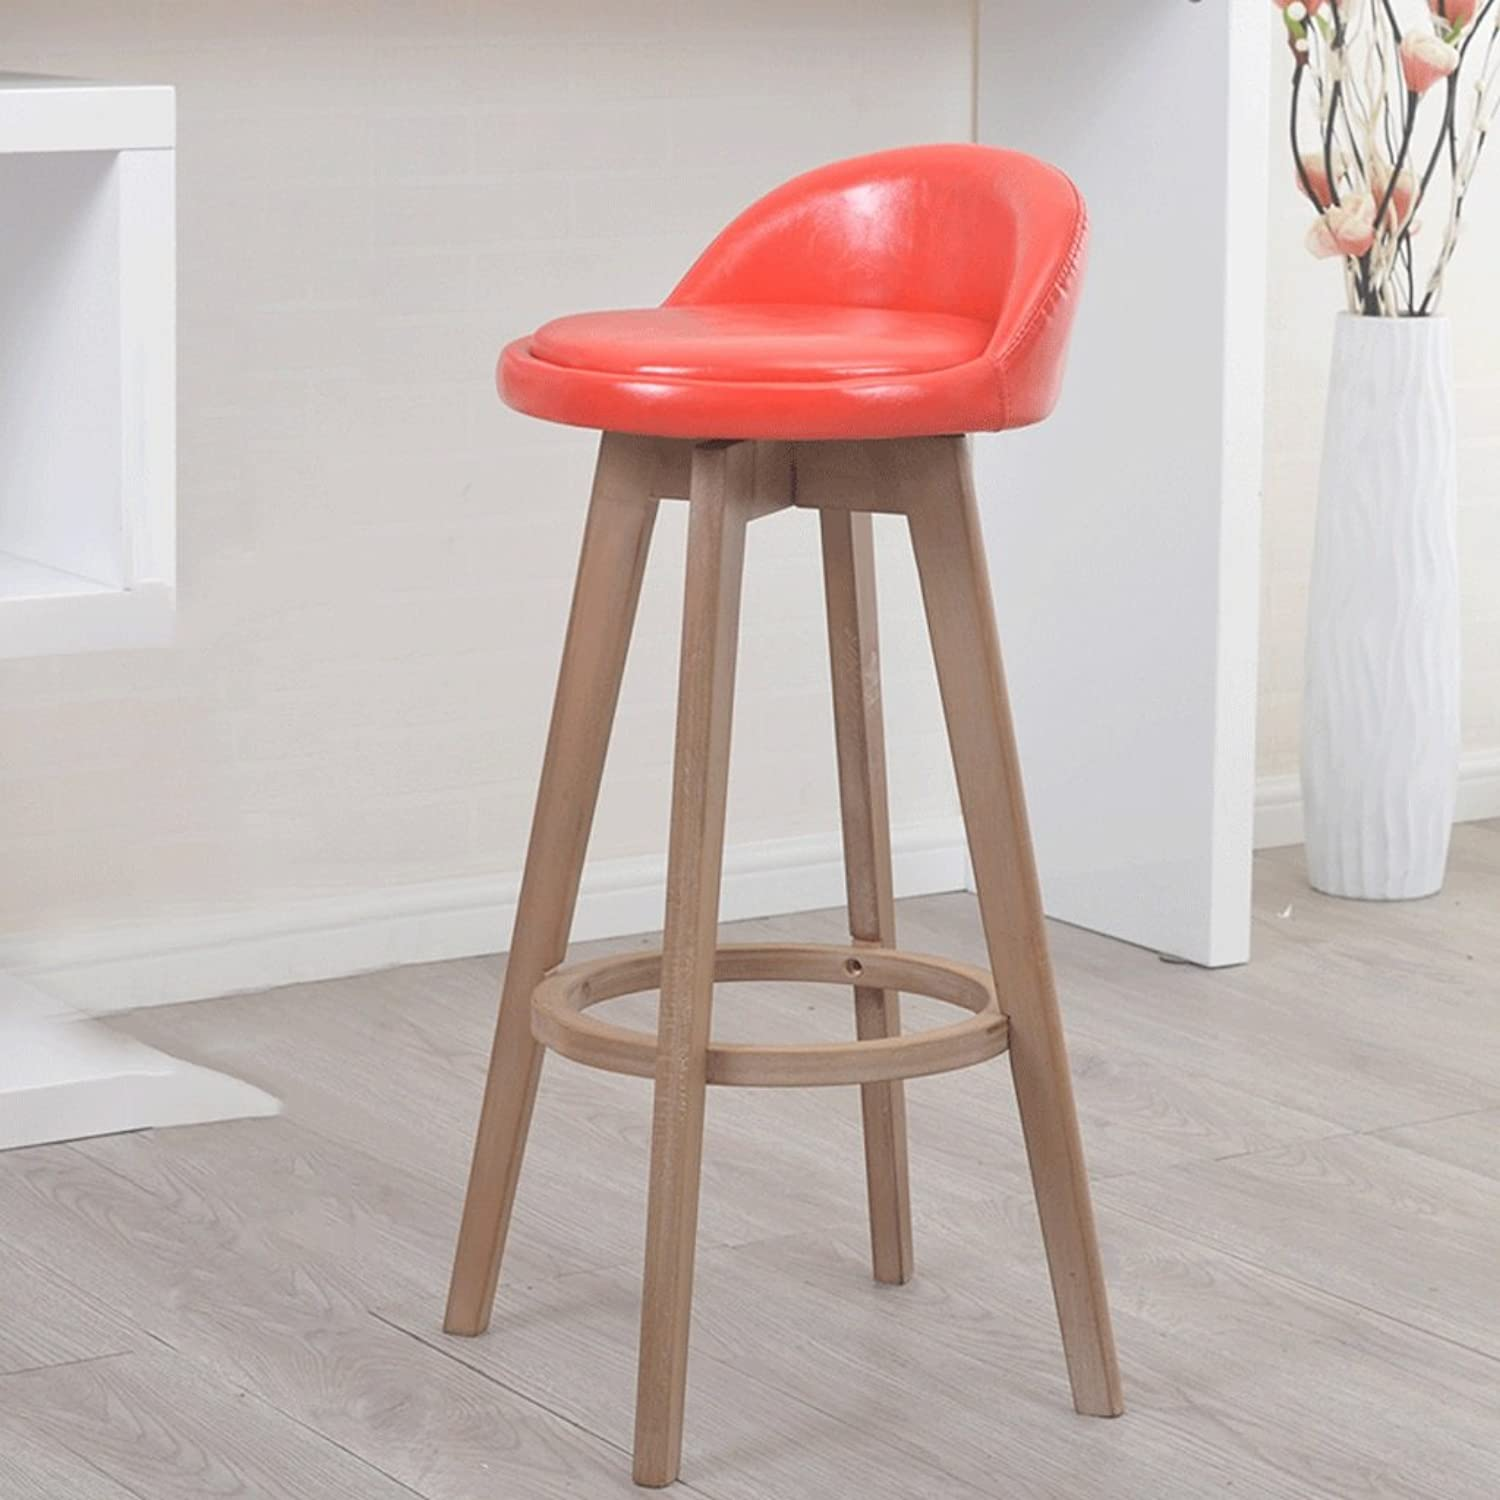 Barstool Solid Wood Bar Chair Red Soft Skin Can redate The Stool Bar Chair Bar Chair High Chair (Size   63cm)